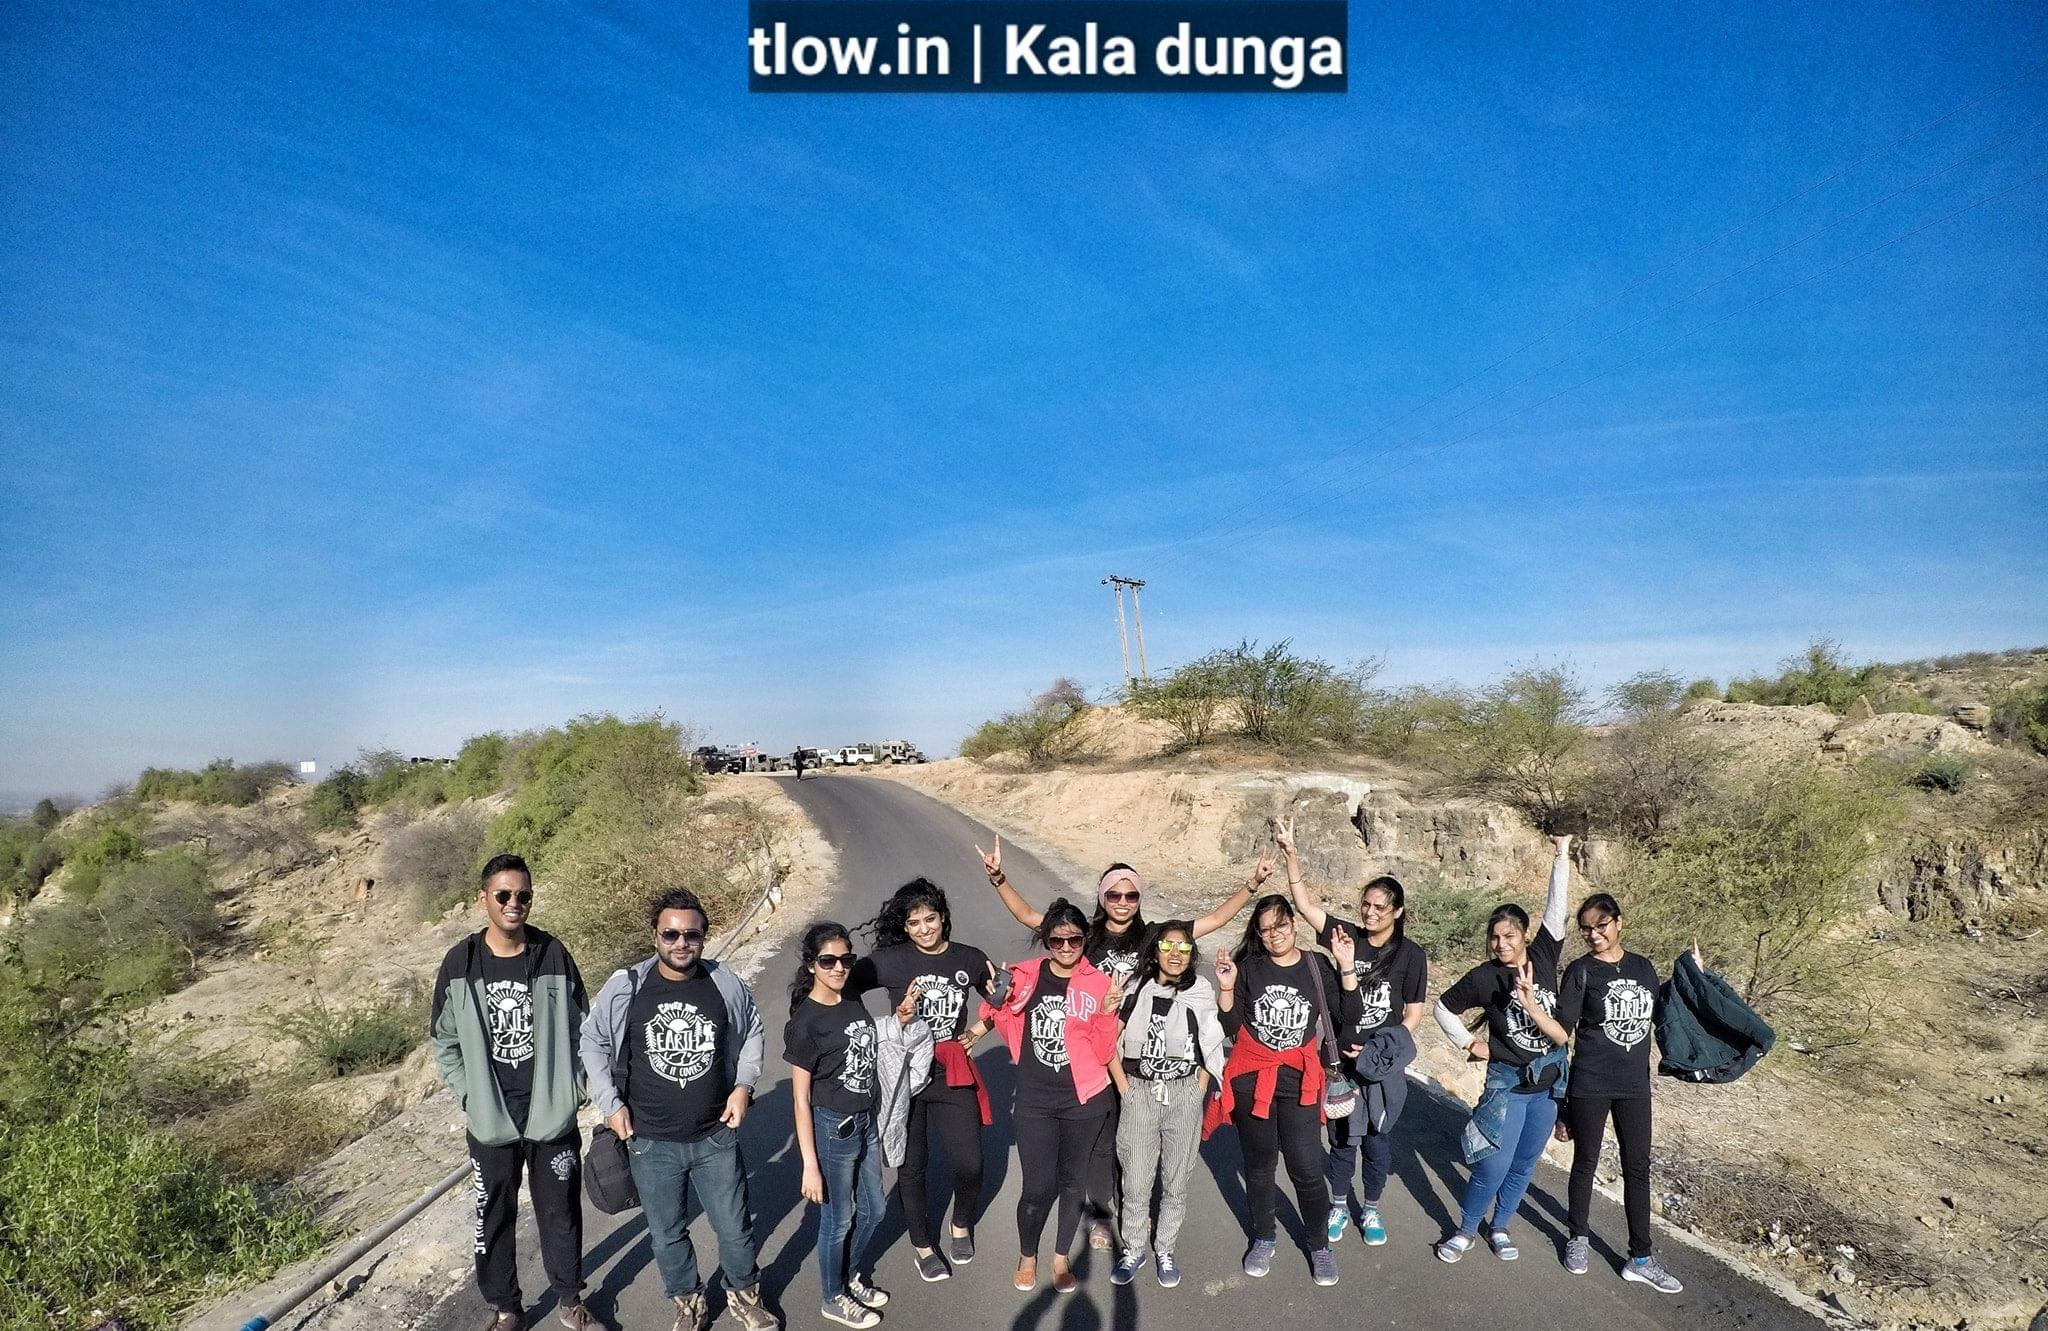 Tlow group picture at Kutch